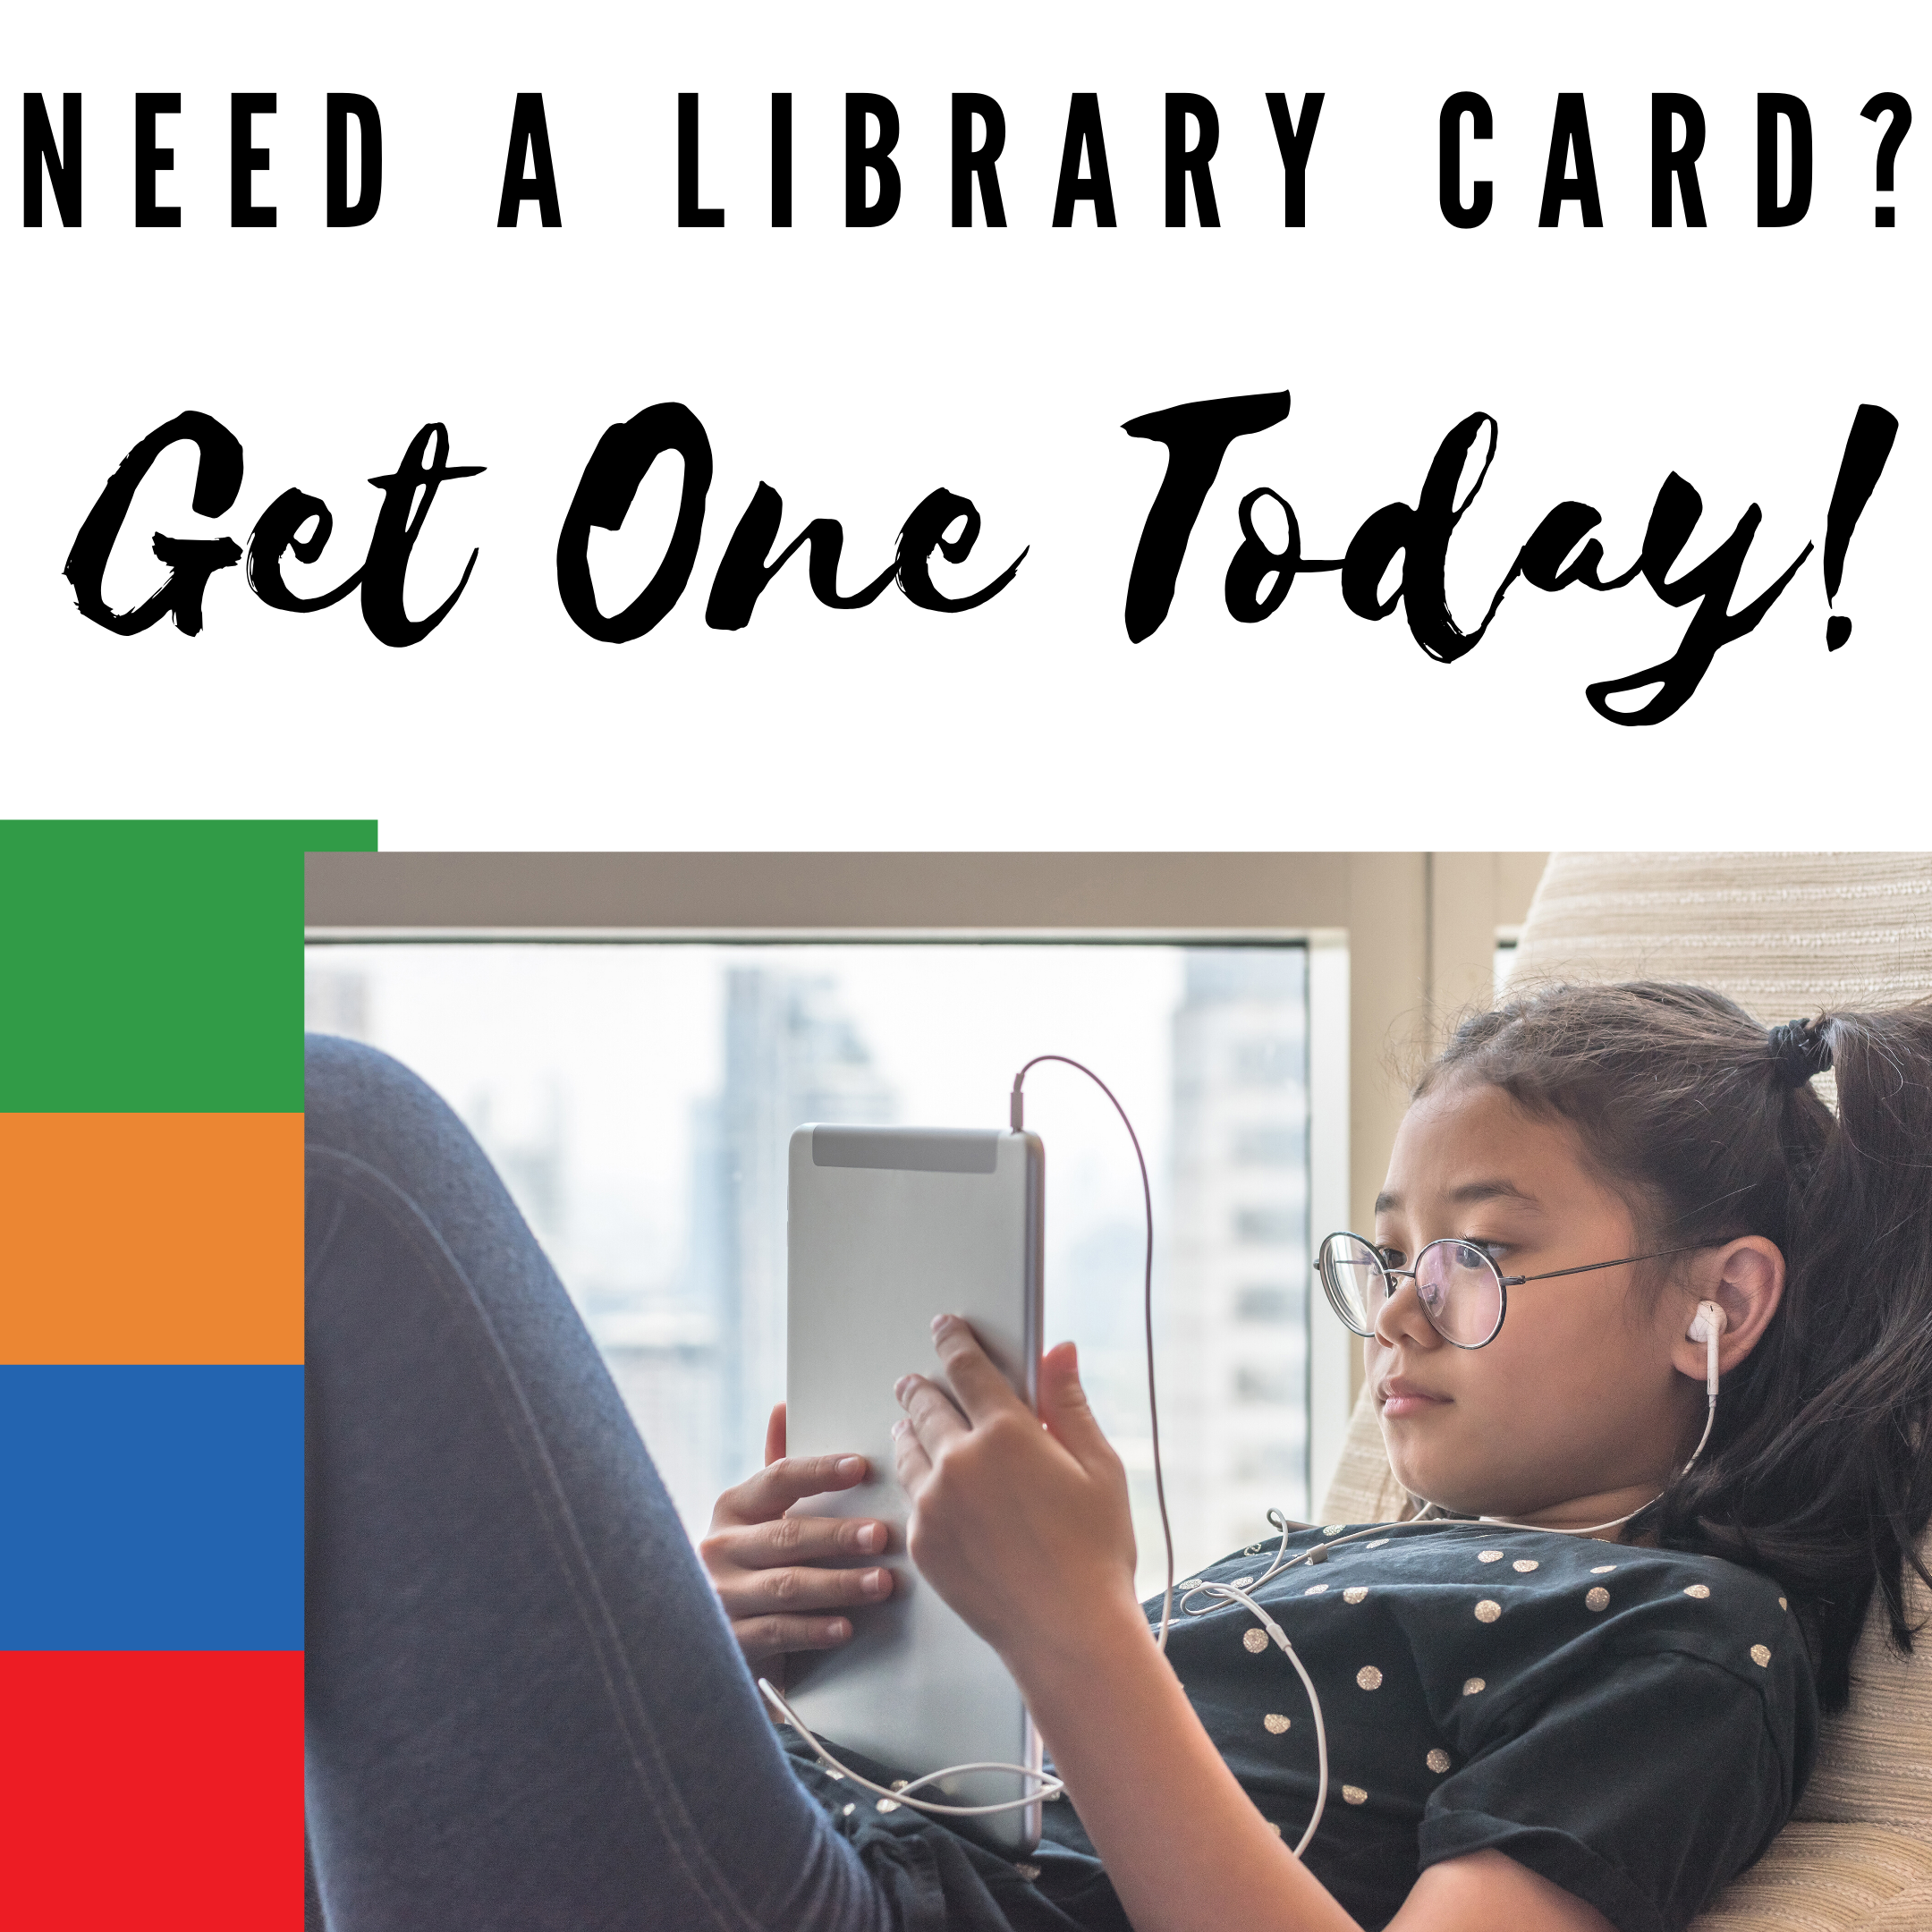 Need a library card? Get one today!